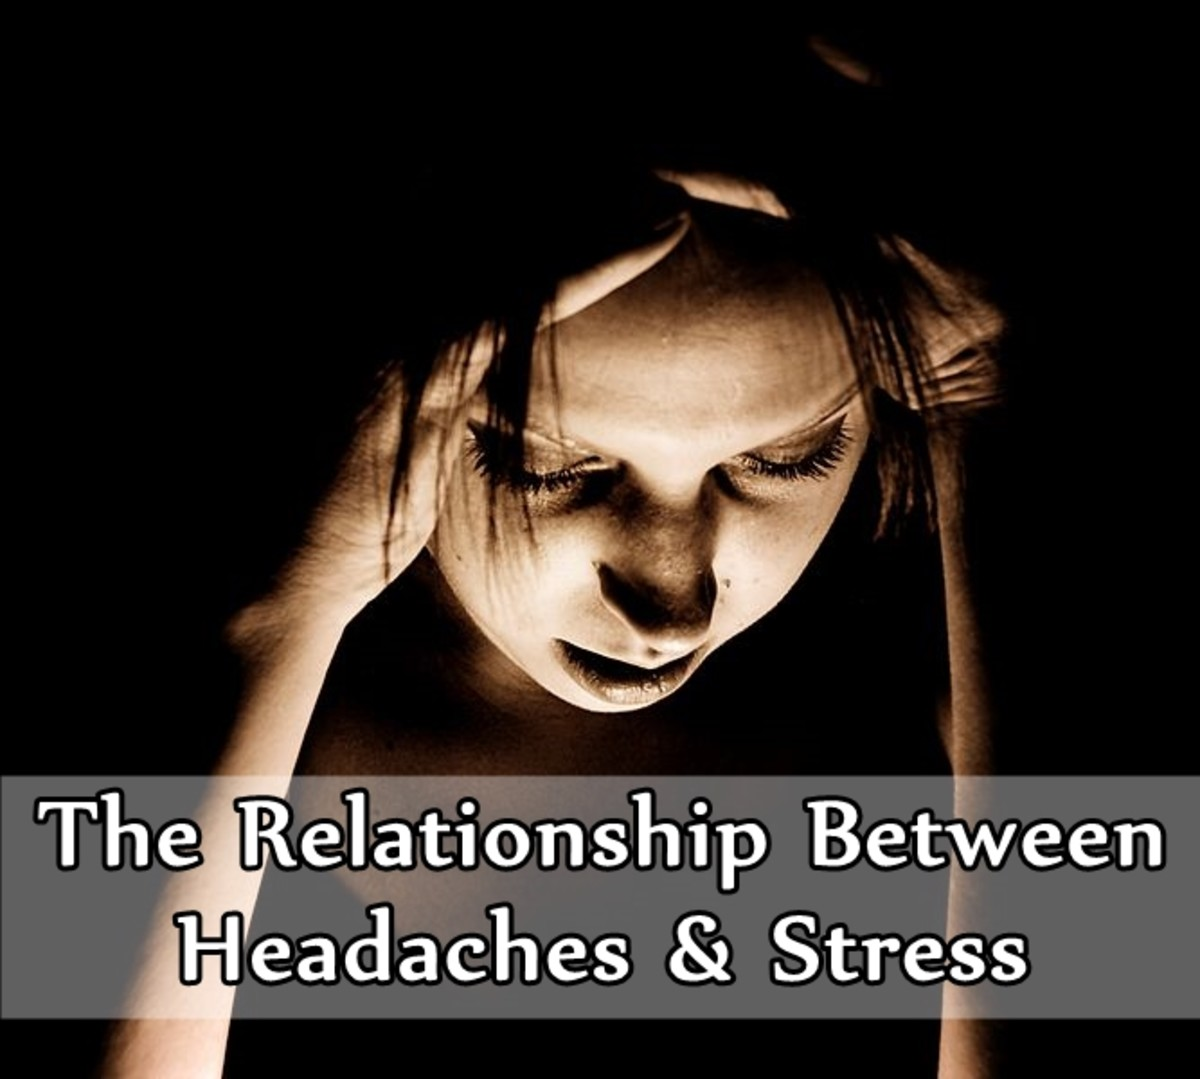 The Relationship Between Headaches and Stress